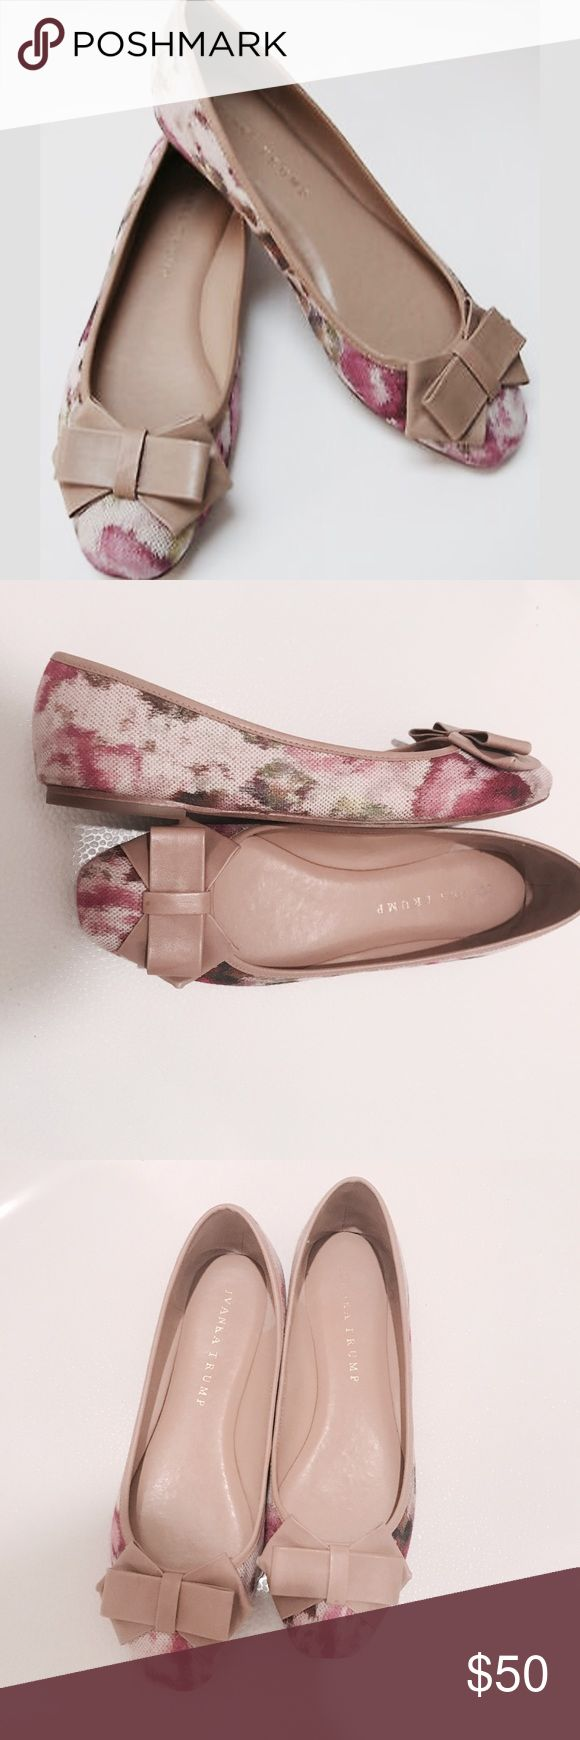 IVANKA TRUMP FLORAL BALLET FLATS WITH BOW SIZE 7.5 Ivanka Trump cloth ballet flats with bow & floral design. Tan insoles. Worn only a hand full of times. Excellent condition. Size 7.5 with medium width. Ivanka Trump Shoes Flats & Loafers